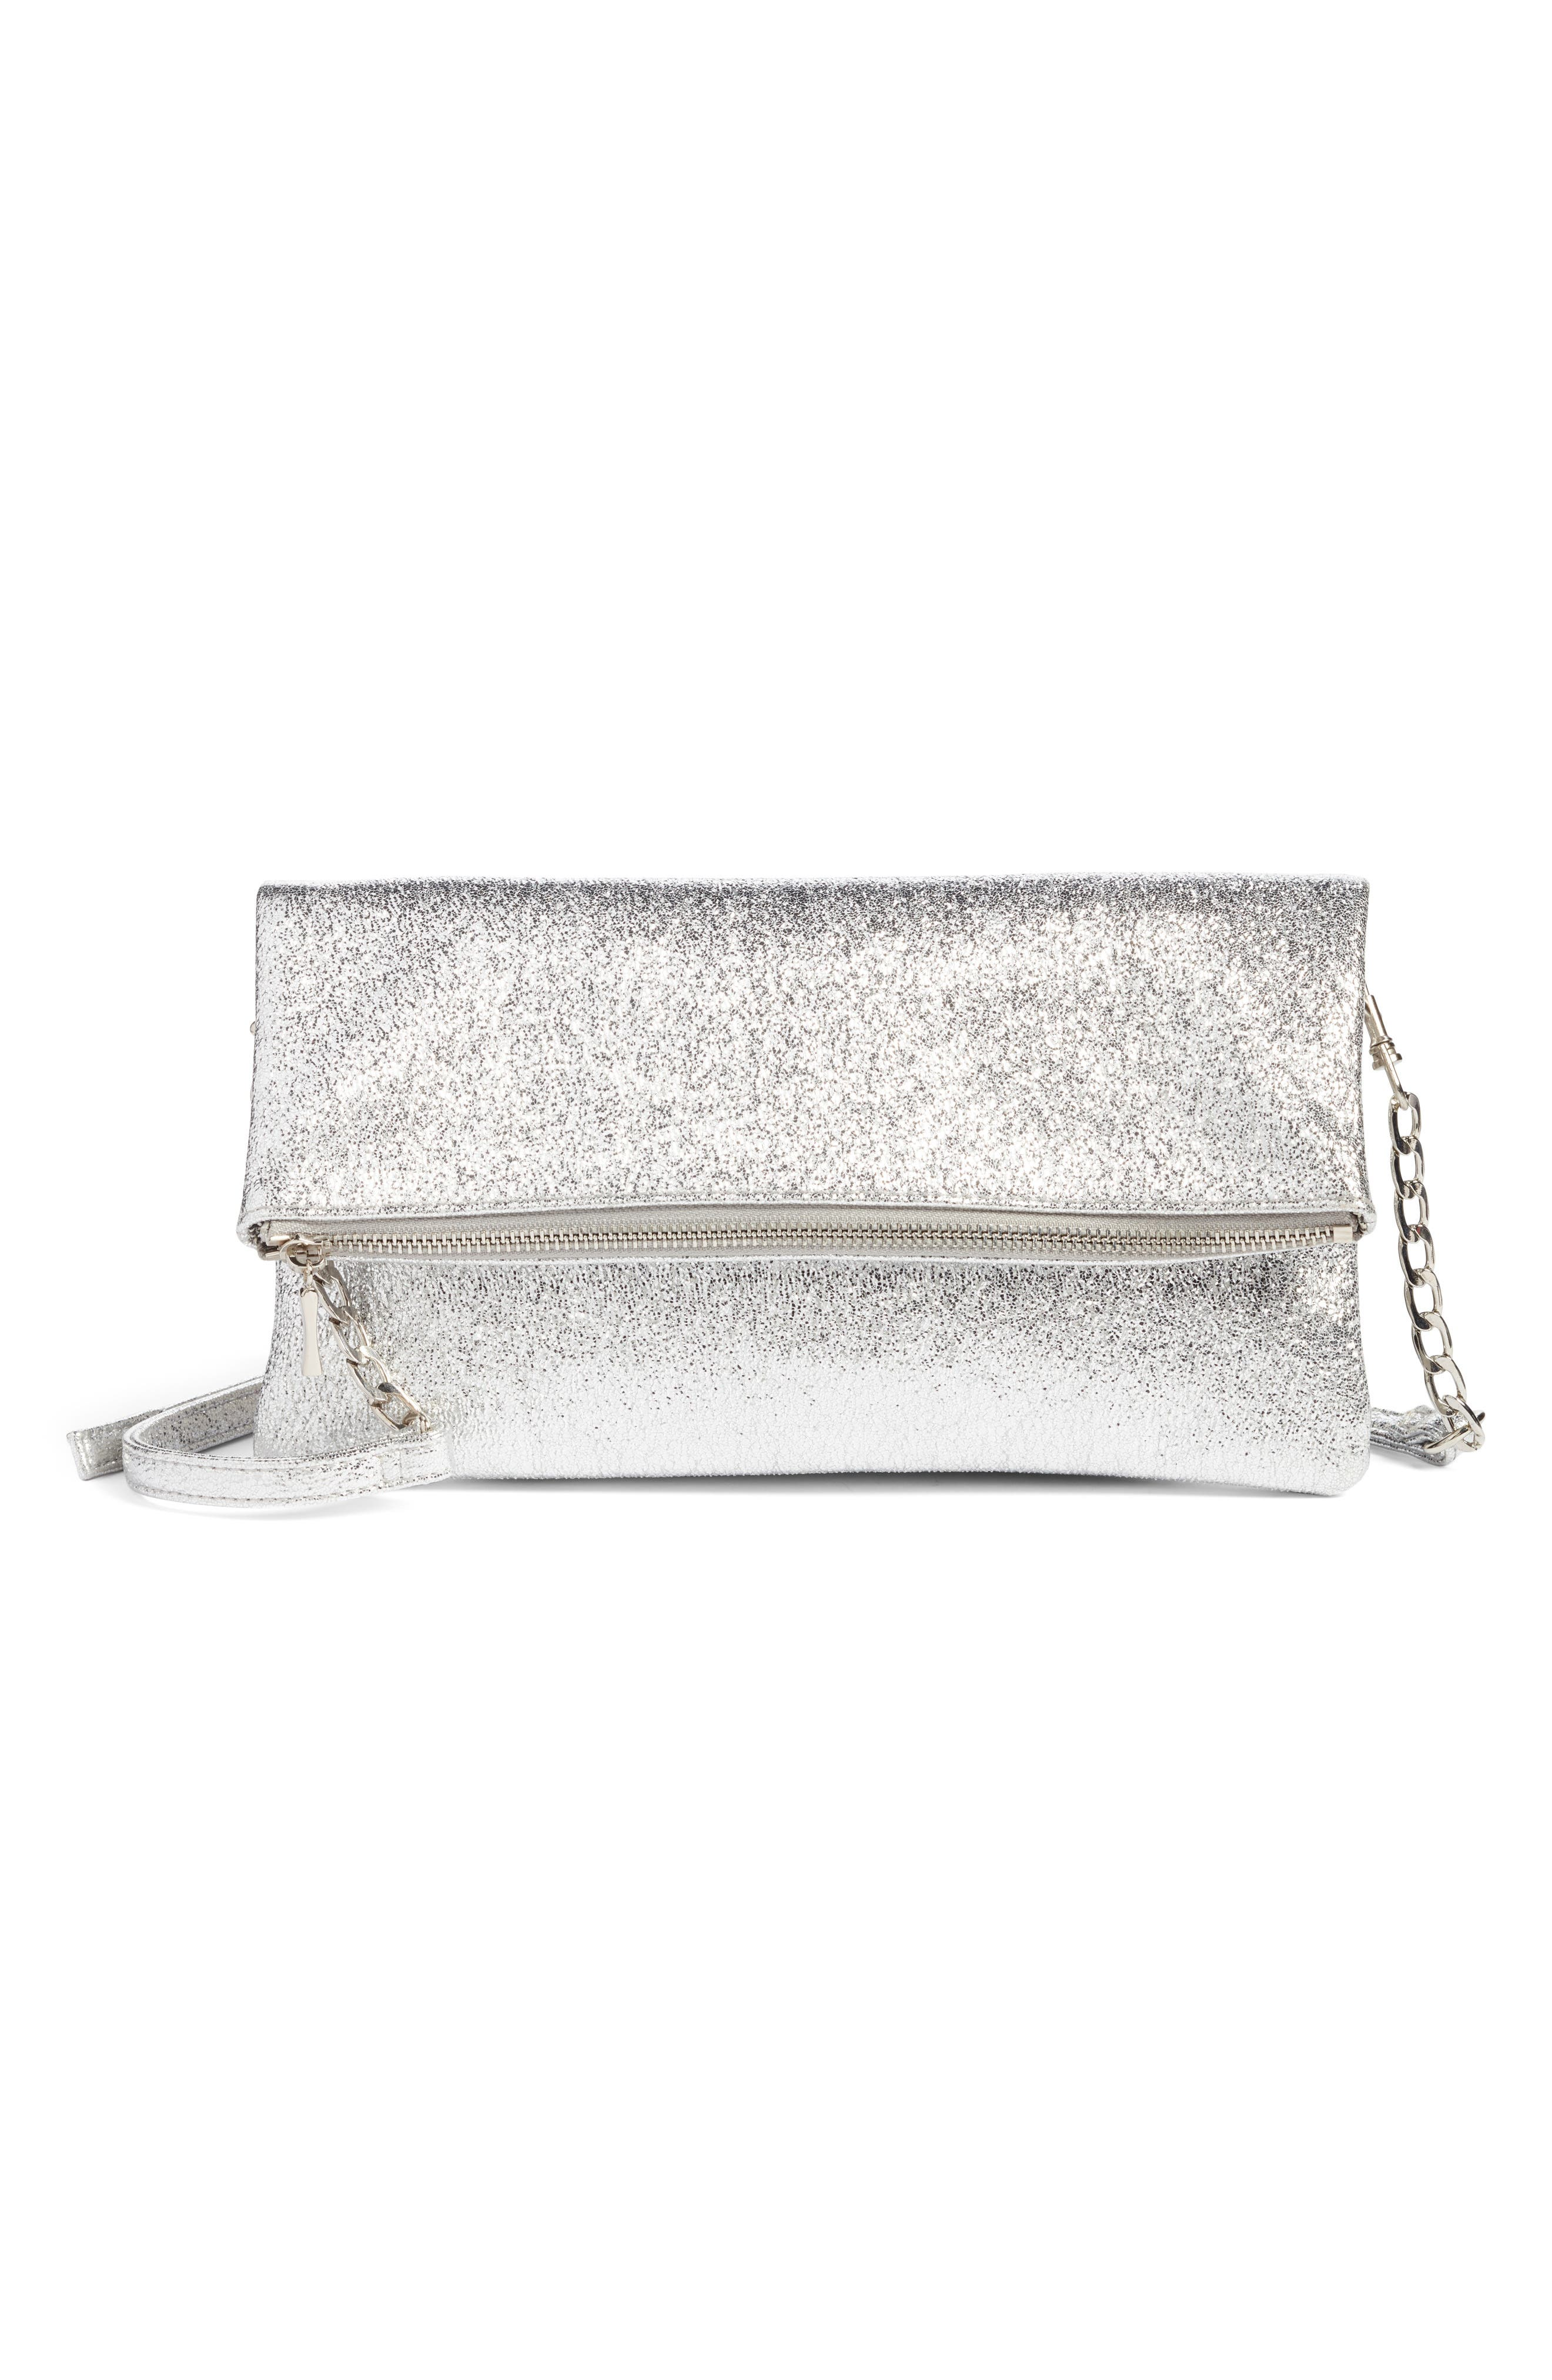 Maci Crinkle Faux Leather Foldover Clutch,                             Main thumbnail 1, color,                             Silver